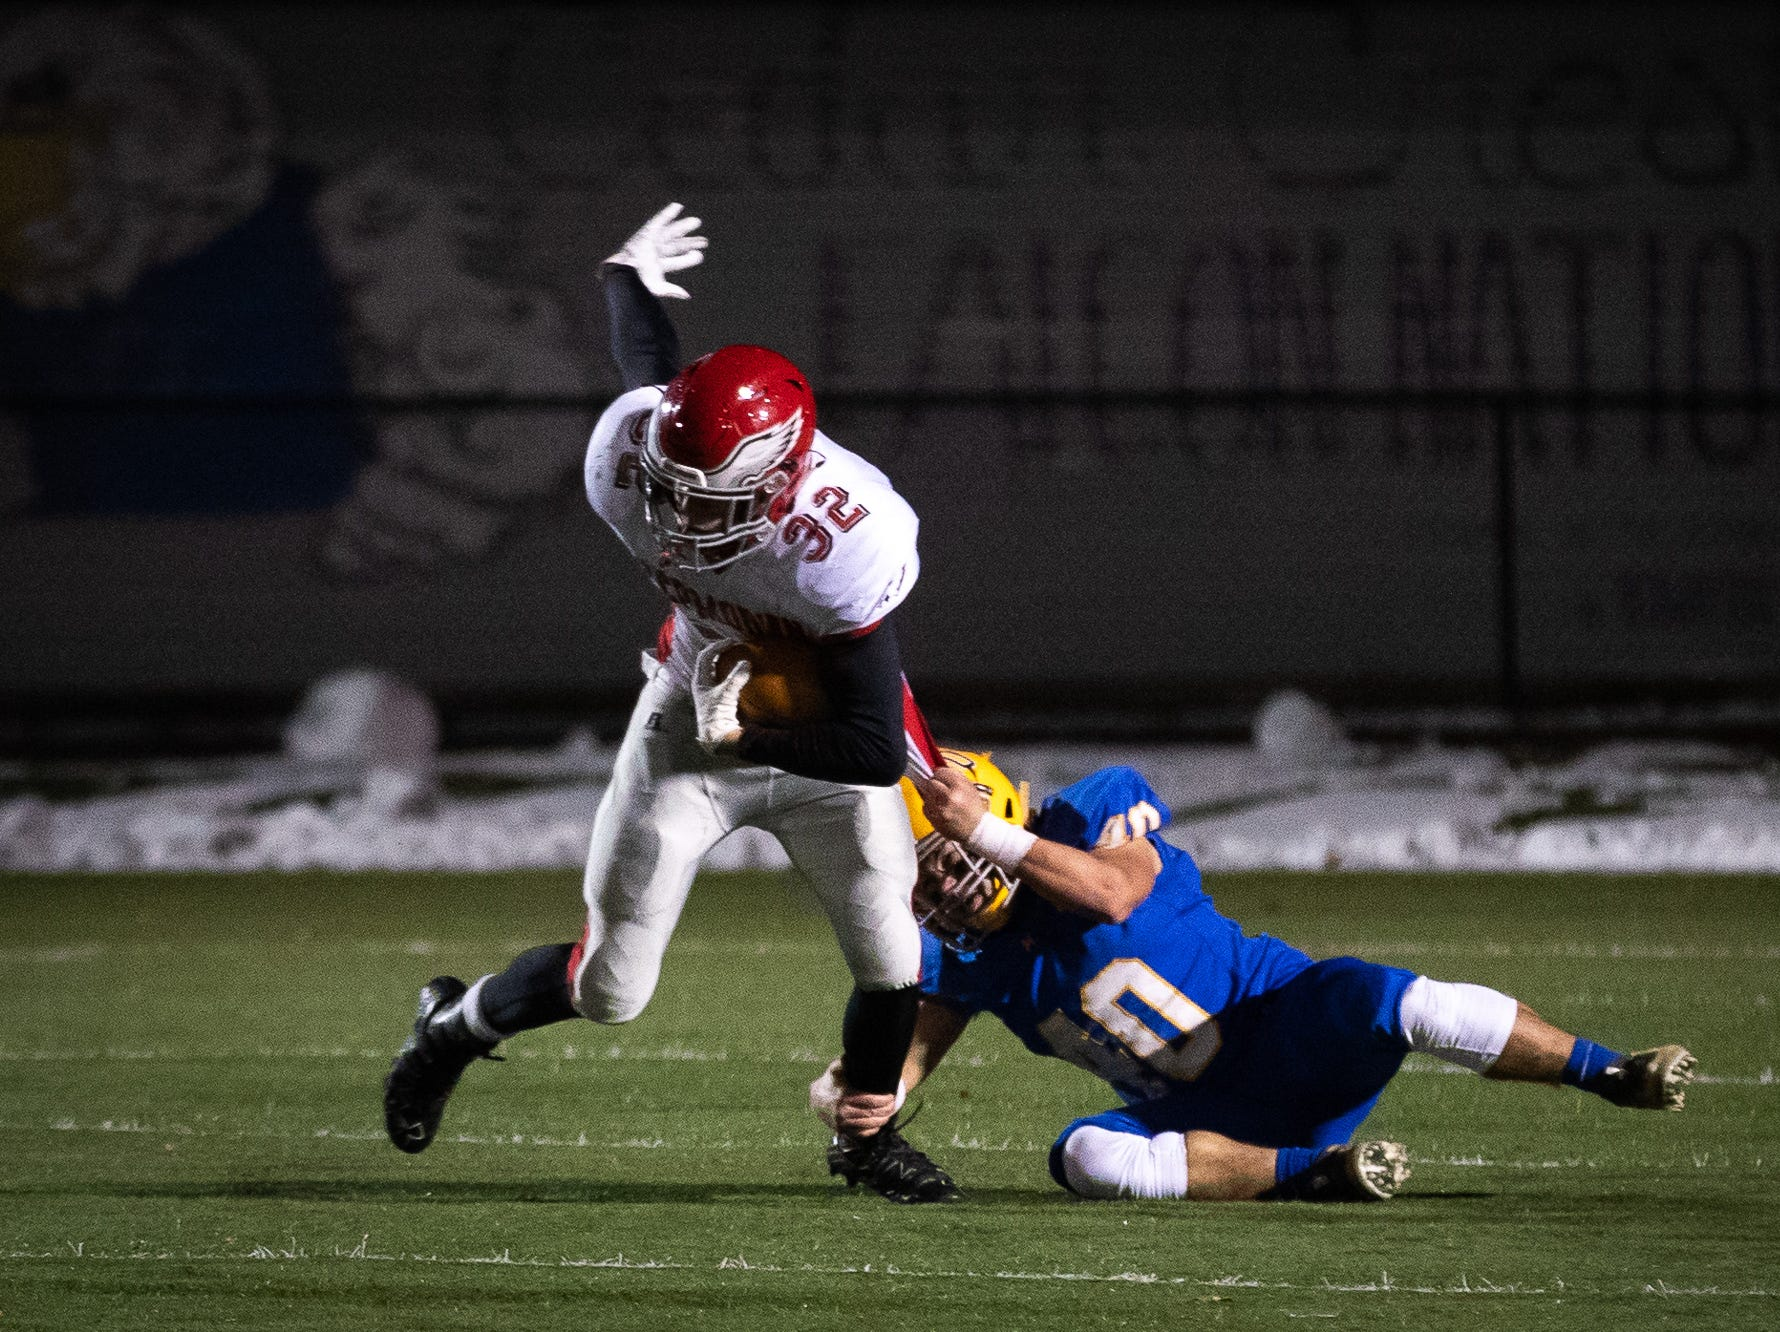 Bermudian Springs' Thomas Bross (32) is brought down by Middletown's Gage Radabaugh (40) during the second half of the District 3 Class 3A championship game between Bermudian Springs and Middletown, Saturday, Nov. 17, 2018, at Cedar Crest High School. The Middletown Raiders defeated the Bermudian Springs Eagles 41-20 to win the title.